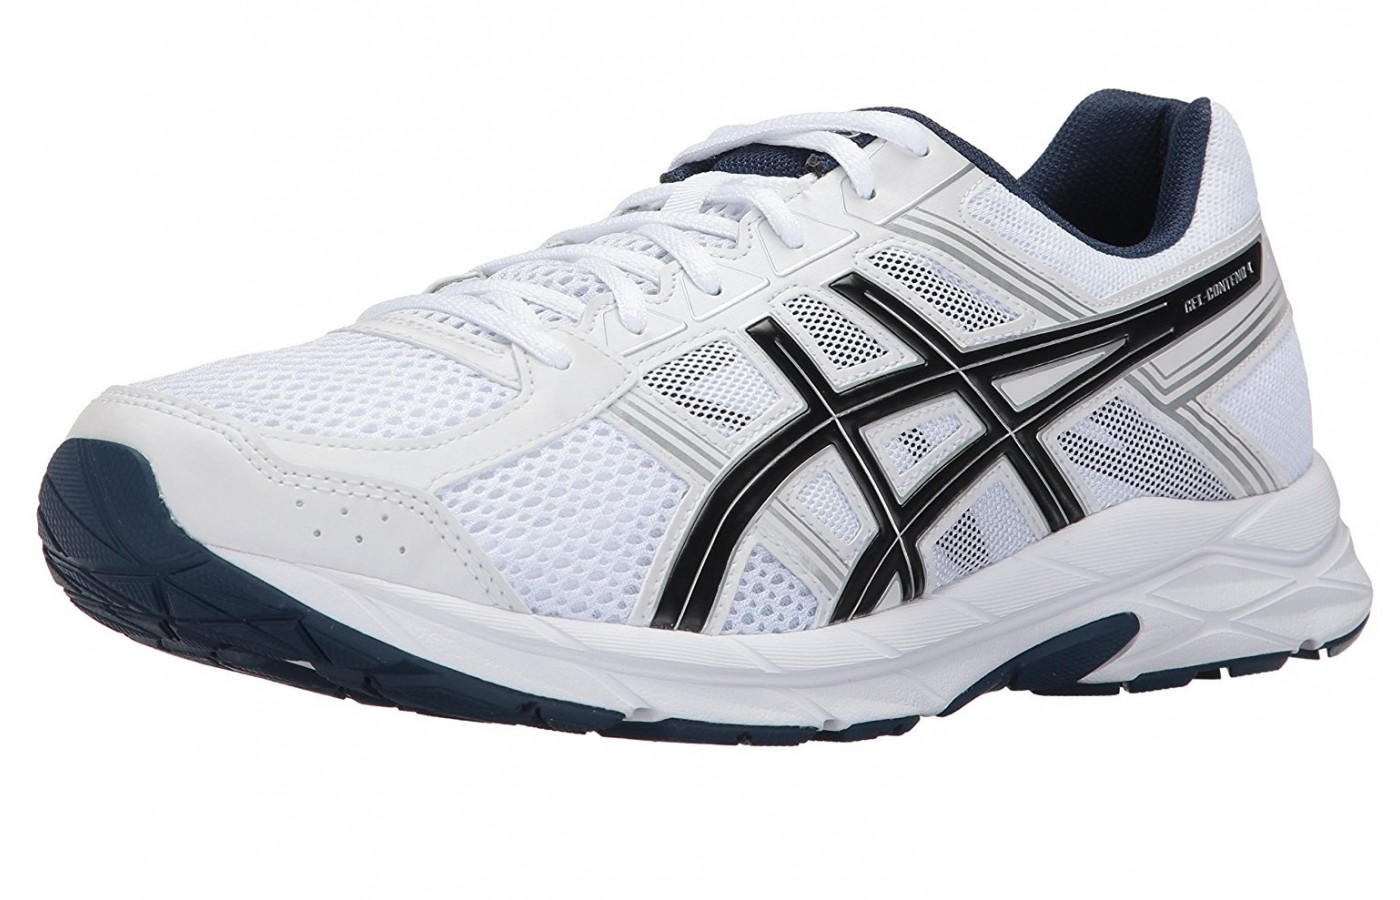 Confidencial legumbres .  Asics Gel Contend 4: To Buy or Not in 2020 | TheGearHunt